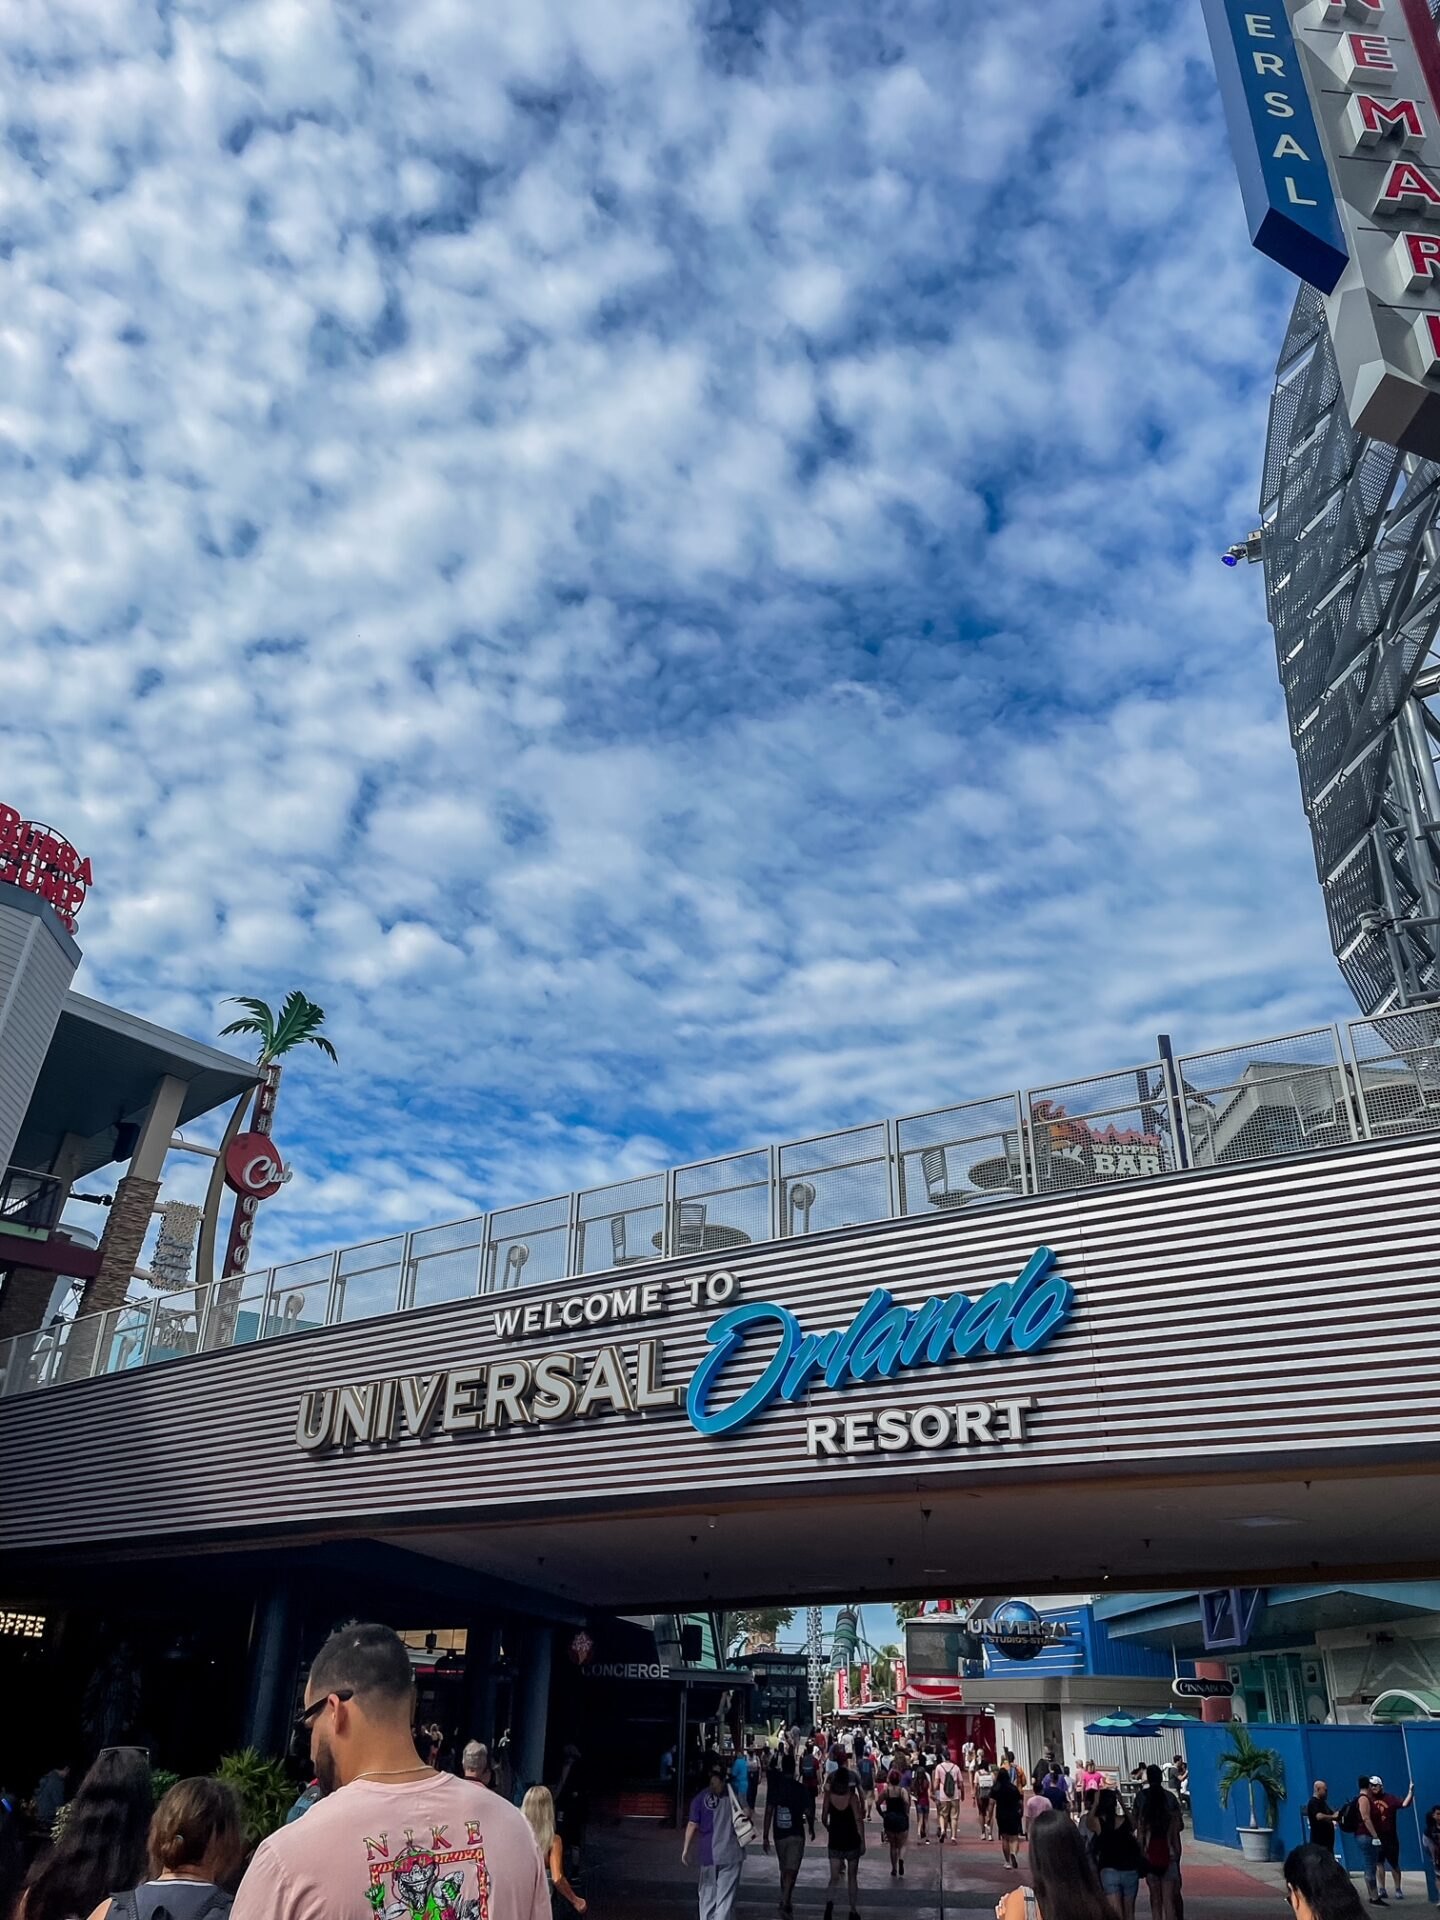 Our Anniversary Trip to Universal Orlando Resort - with things to do at Universal Studios Orlando when it rains, must-do things at Harry Potter World, + MORE!